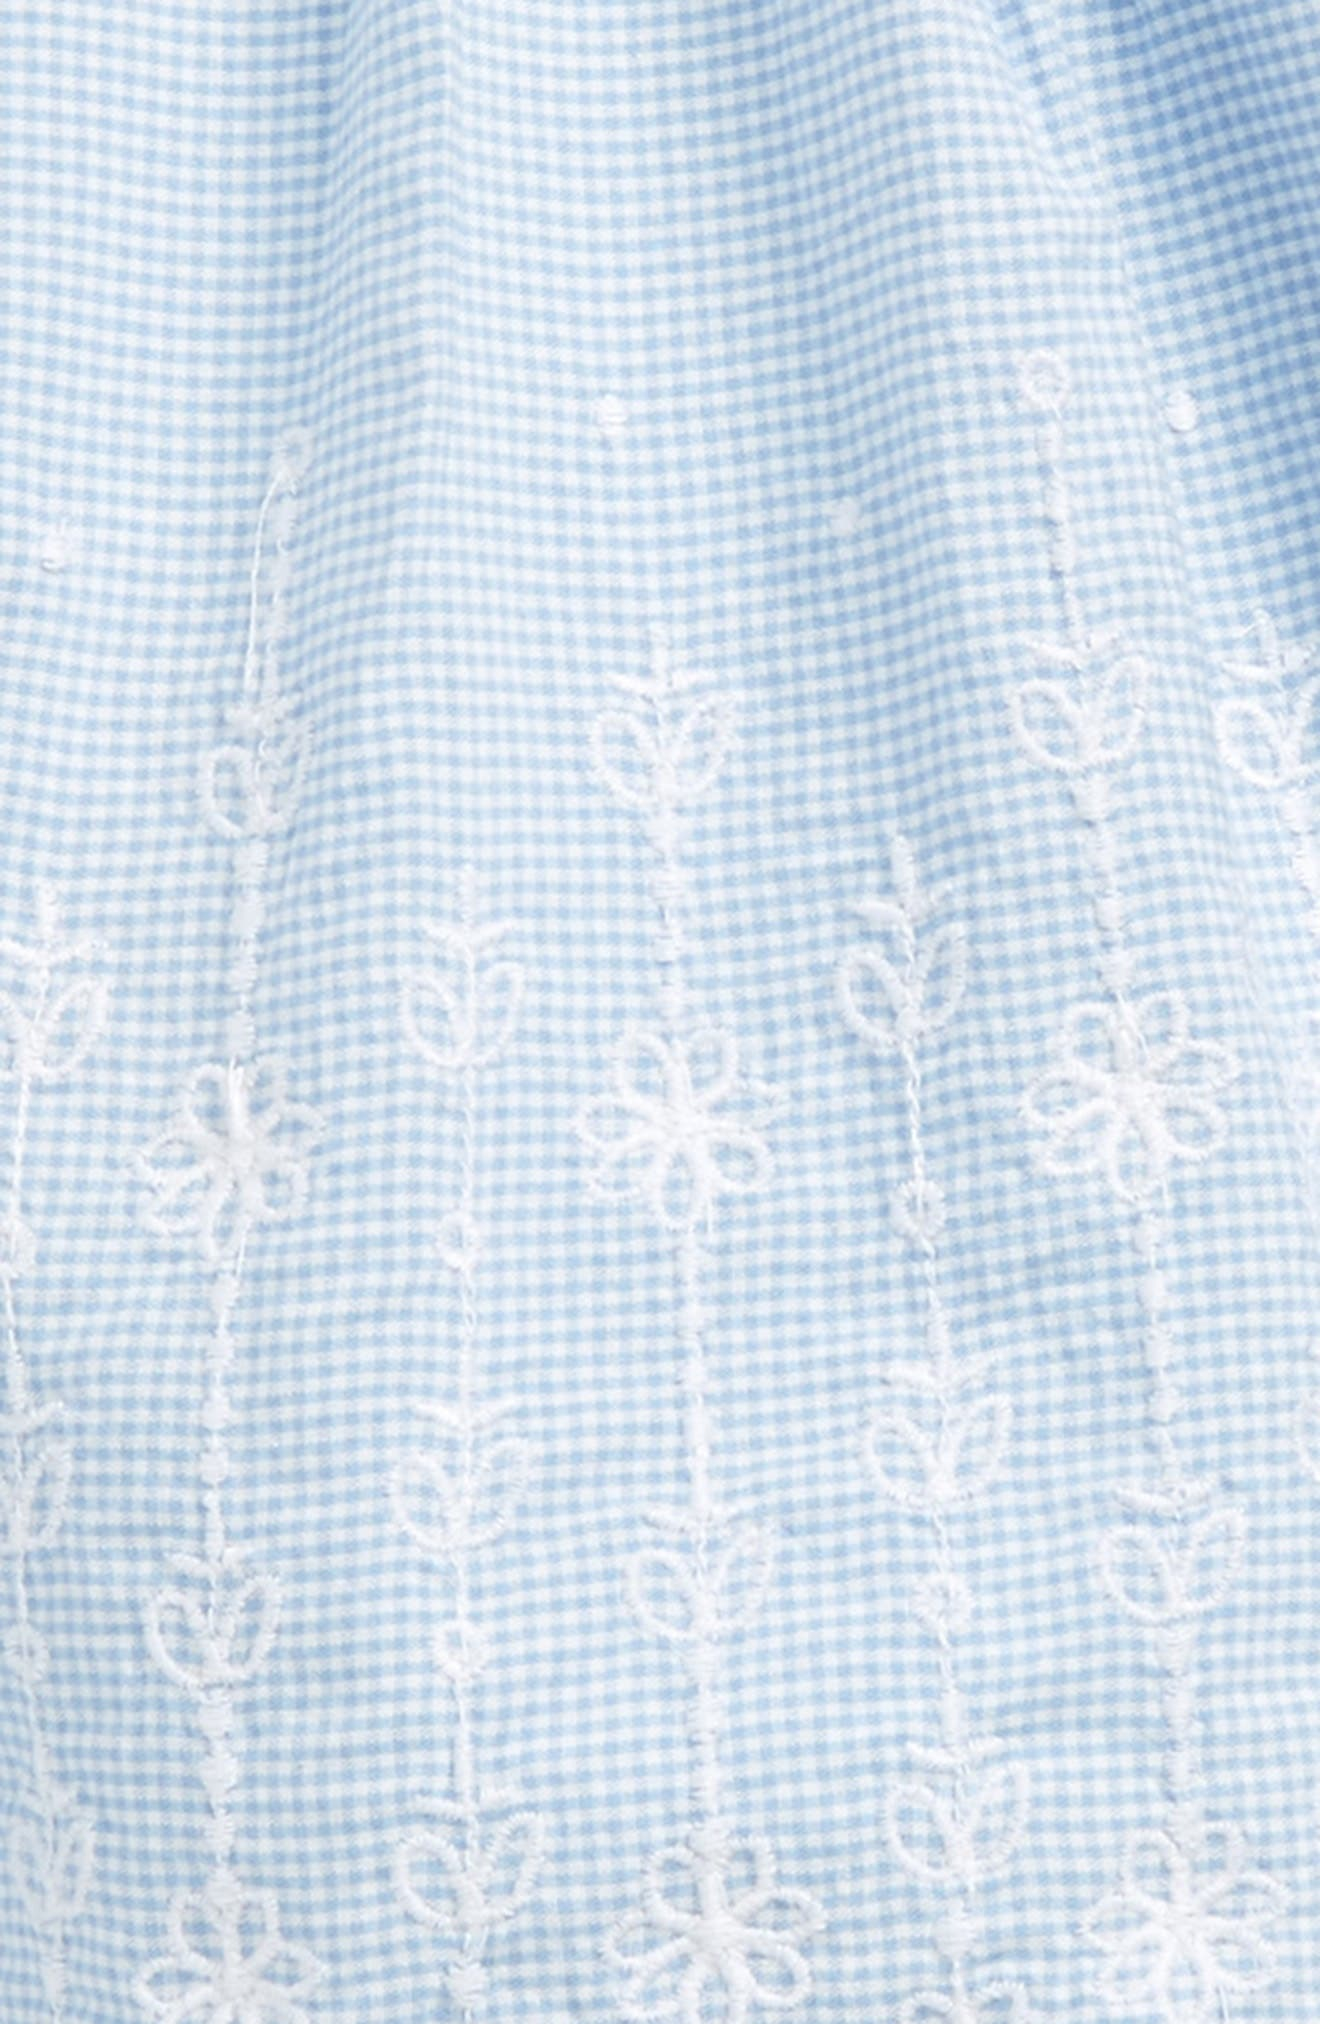 NORDSTROM BABY, Embroidered Mini Check Dress, Alternate thumbnail 2, color, WHITE- BLUE MINI CHECK